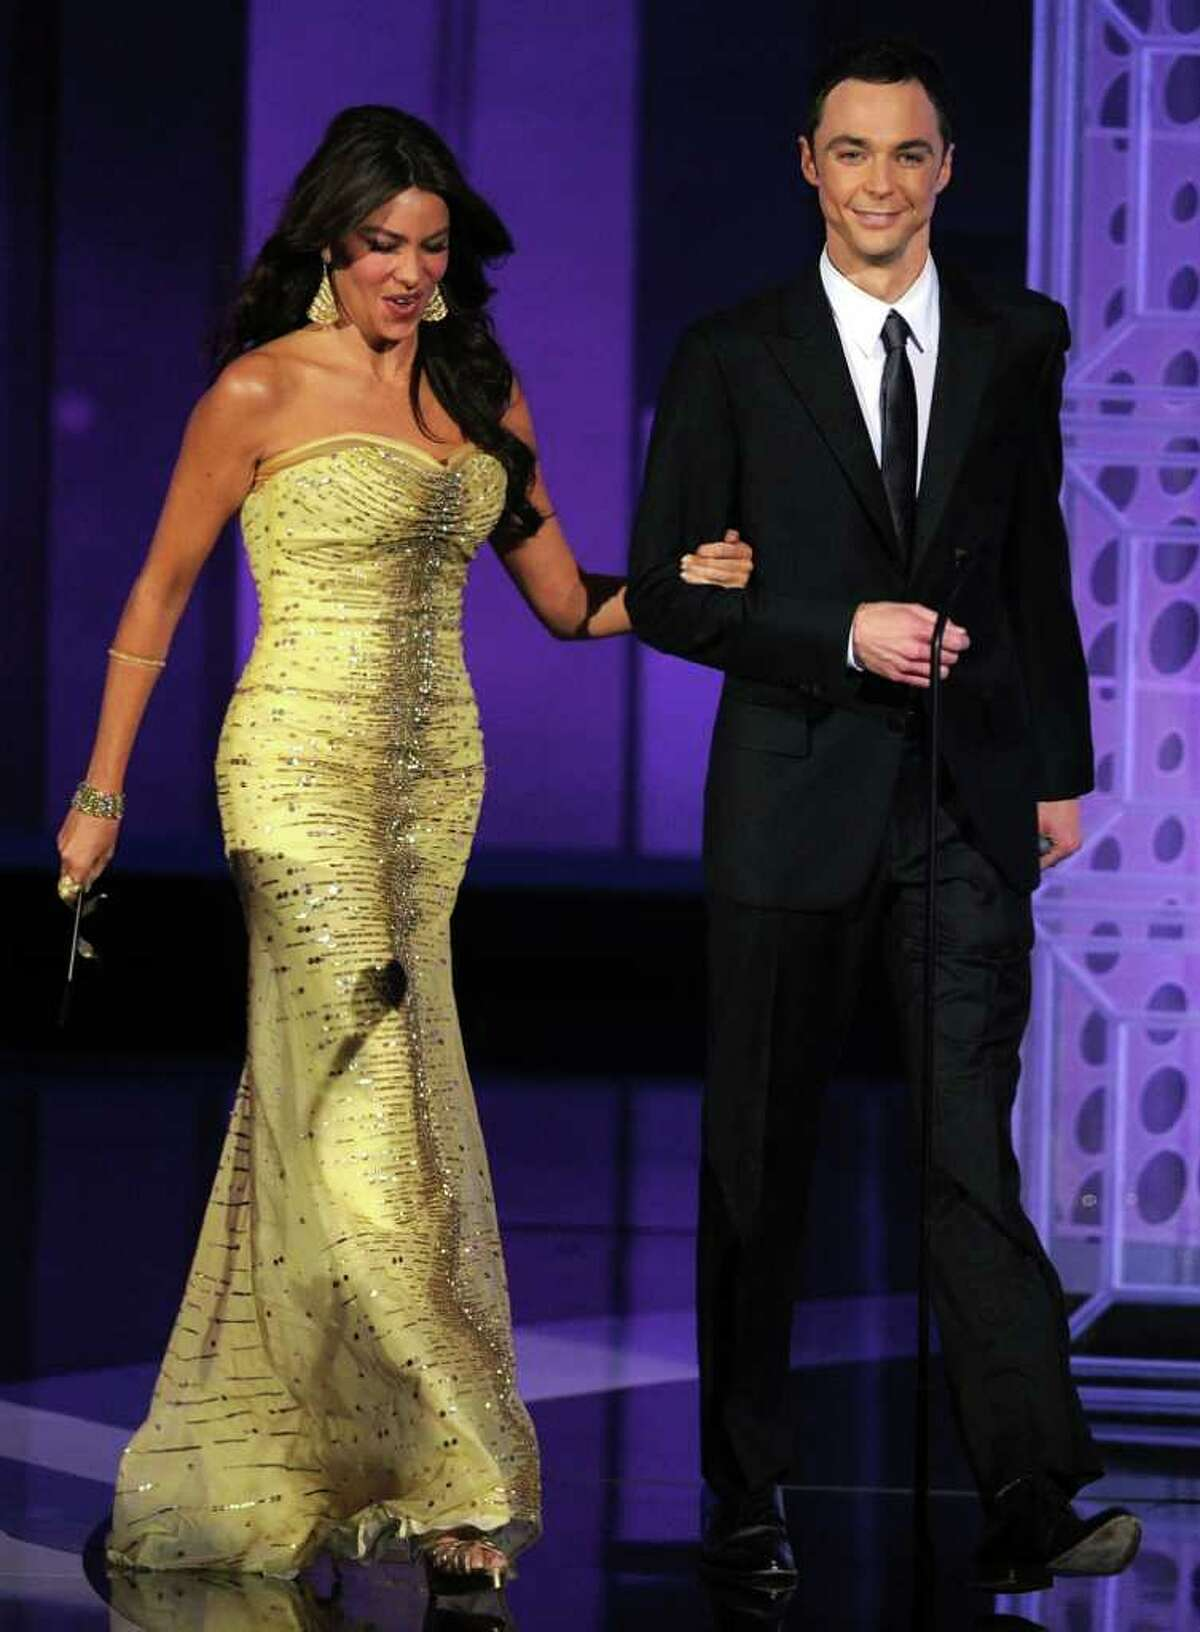 LOS ANGELES, CA - AUGUST 29: Actress Sofia Vergara (L) and actor Jim Parsons present the Outstanding Writing for a Comedy Series award onstage at the 62nd Annual Primetime Emmy Awards held at the Nokia Theatre L.A. Live on August 29, 2010 in Los Angeles, California. (Photo by Kevin Winter/Getty Images) *** Local Caption *** Sofia Vergara;Jim Parsons